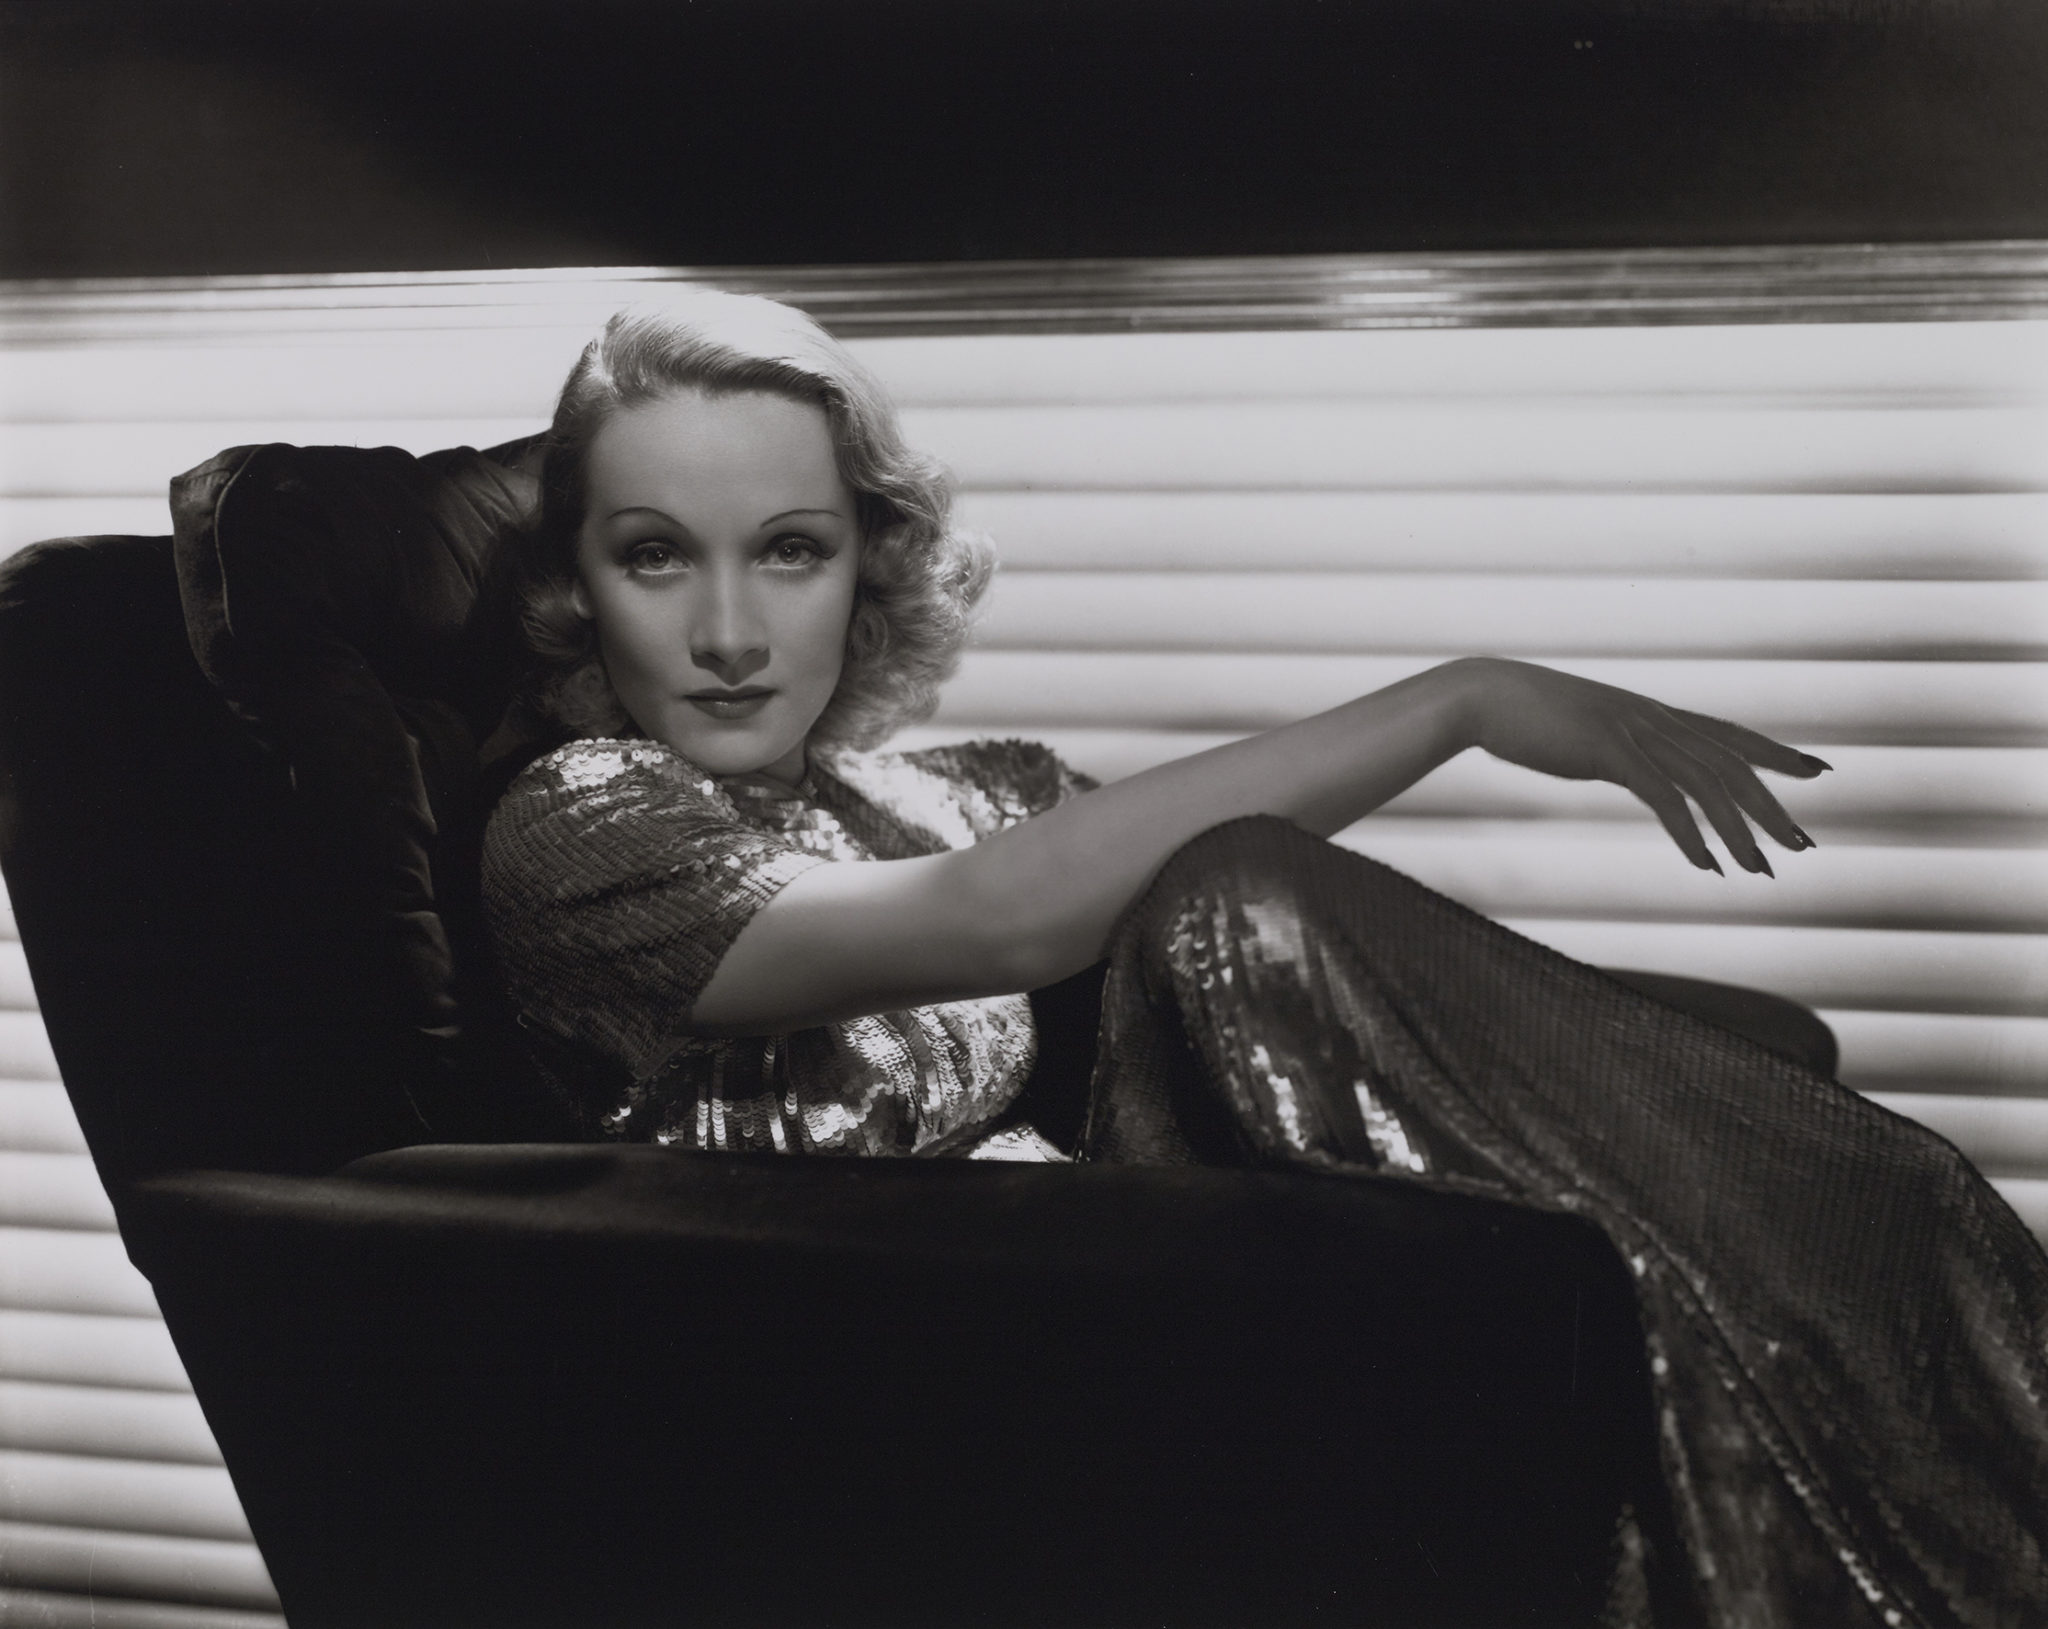 George Hurrell Marlene Dietrich, vers 1935-1936 © Bridgeman Images